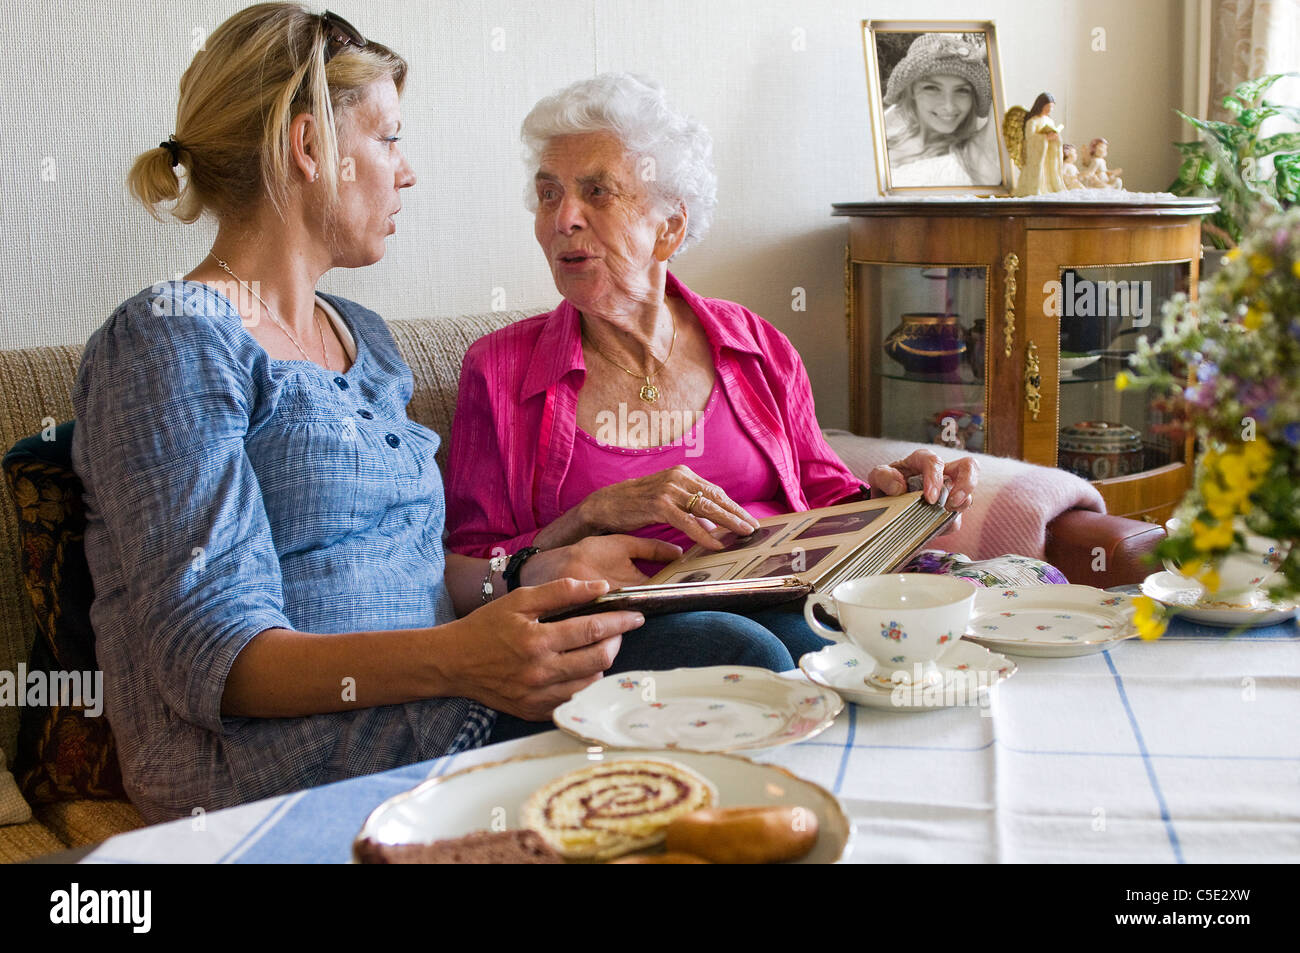 Woman on coffee visit with grandma at home - Stock Image